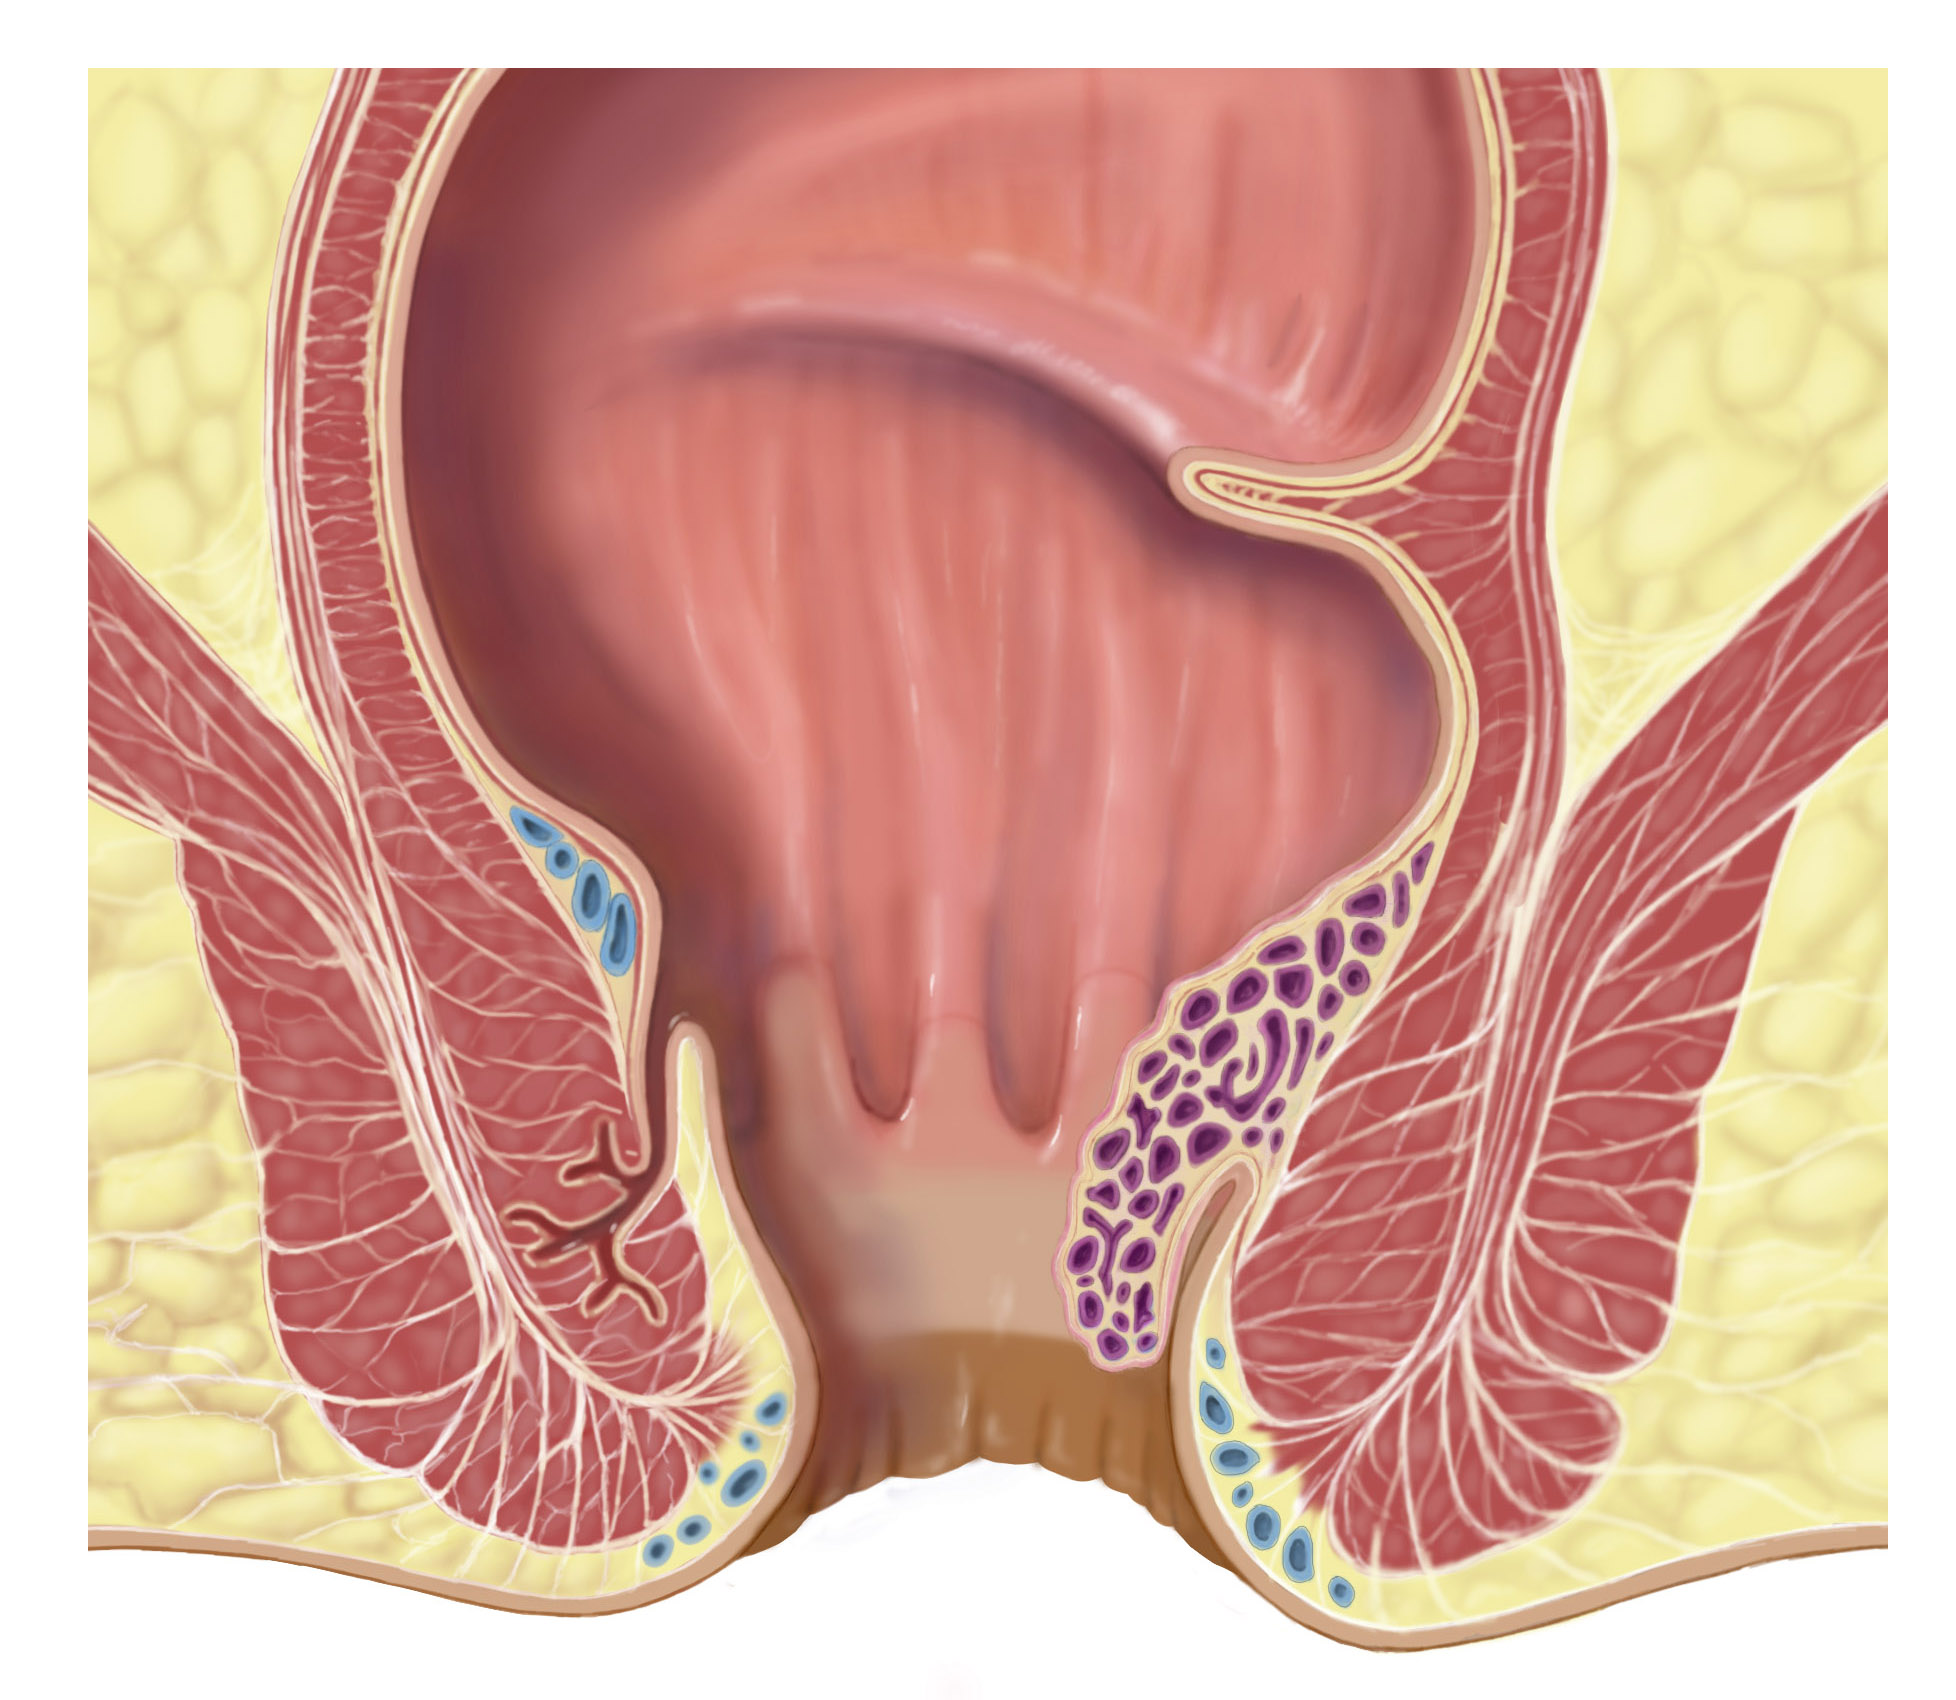 Illustrations of various diseases which can be found in rectal examinations - internal hemorrhoids